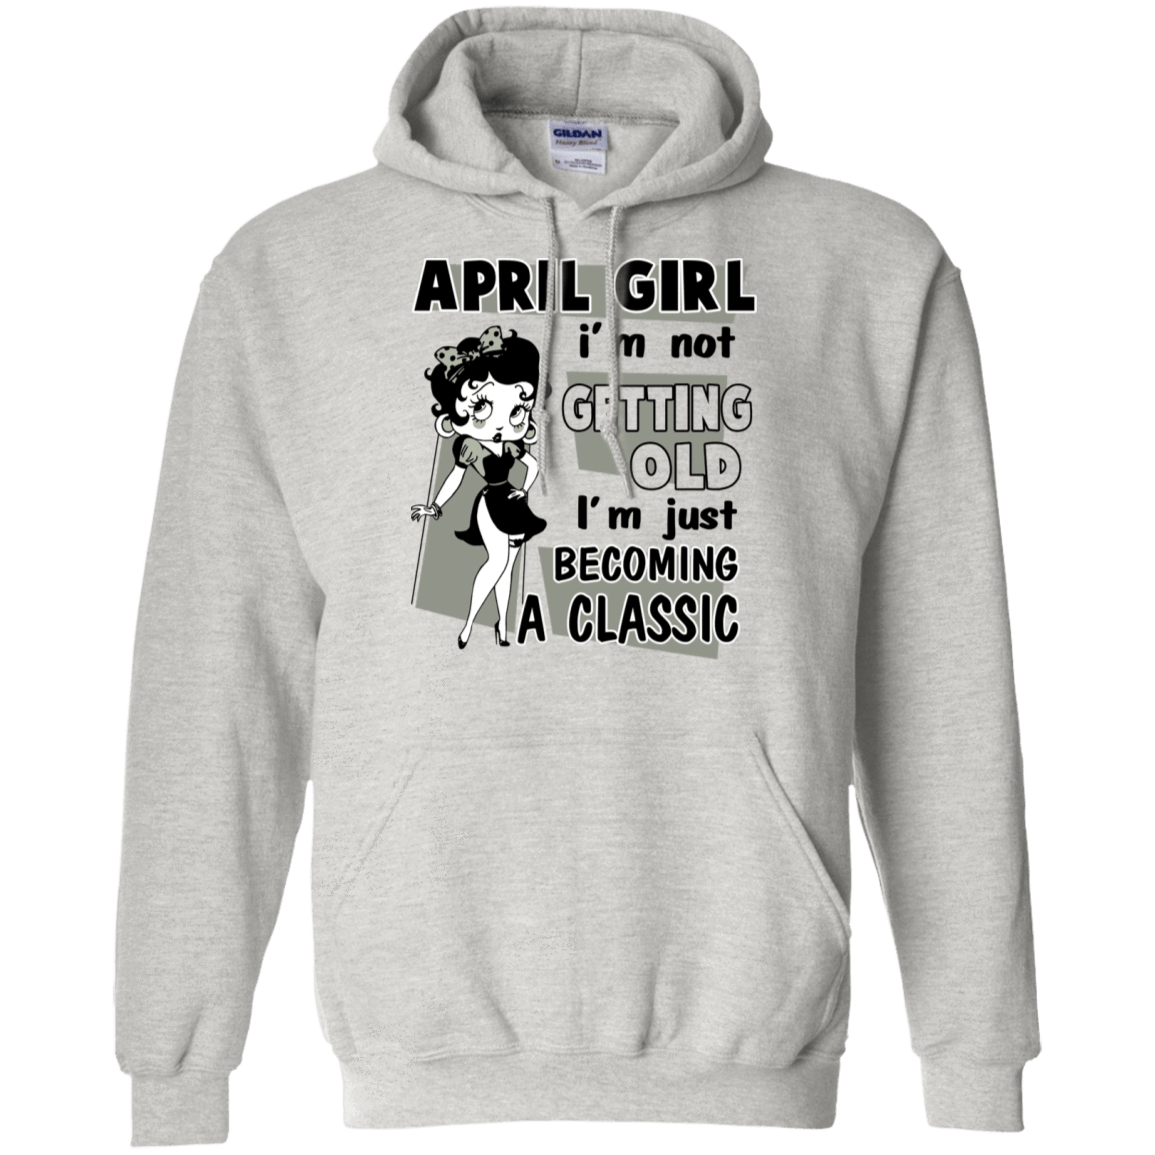 April Girl I'm Not Getting Old I'm Just Becoming A Classic T-Shirts, Hoodies 541-4748-77495251-23071 - Tee Ript